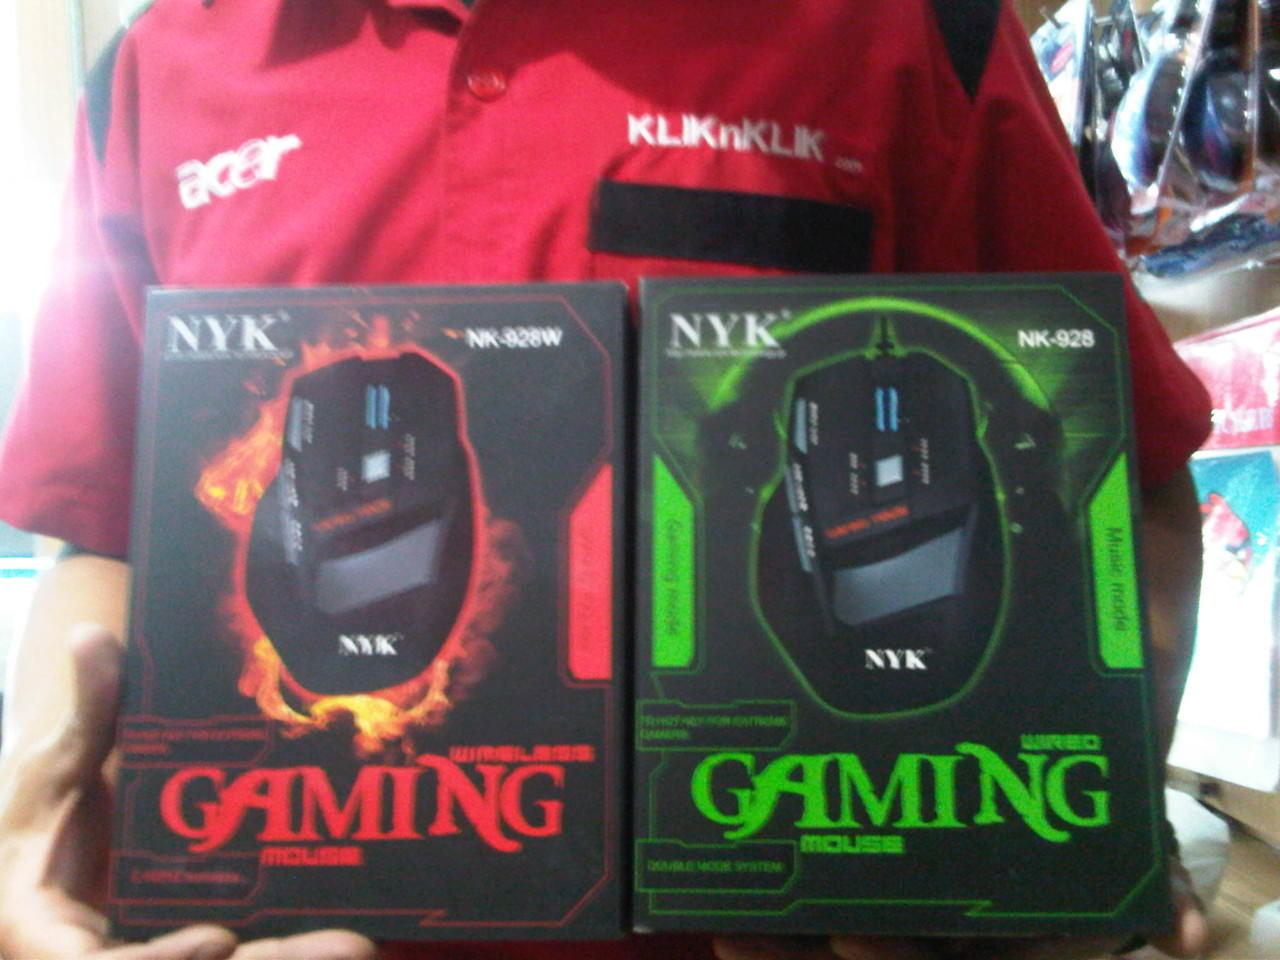 Mouse Gamming NYK NK-W928 (Red) Wireless Bandung